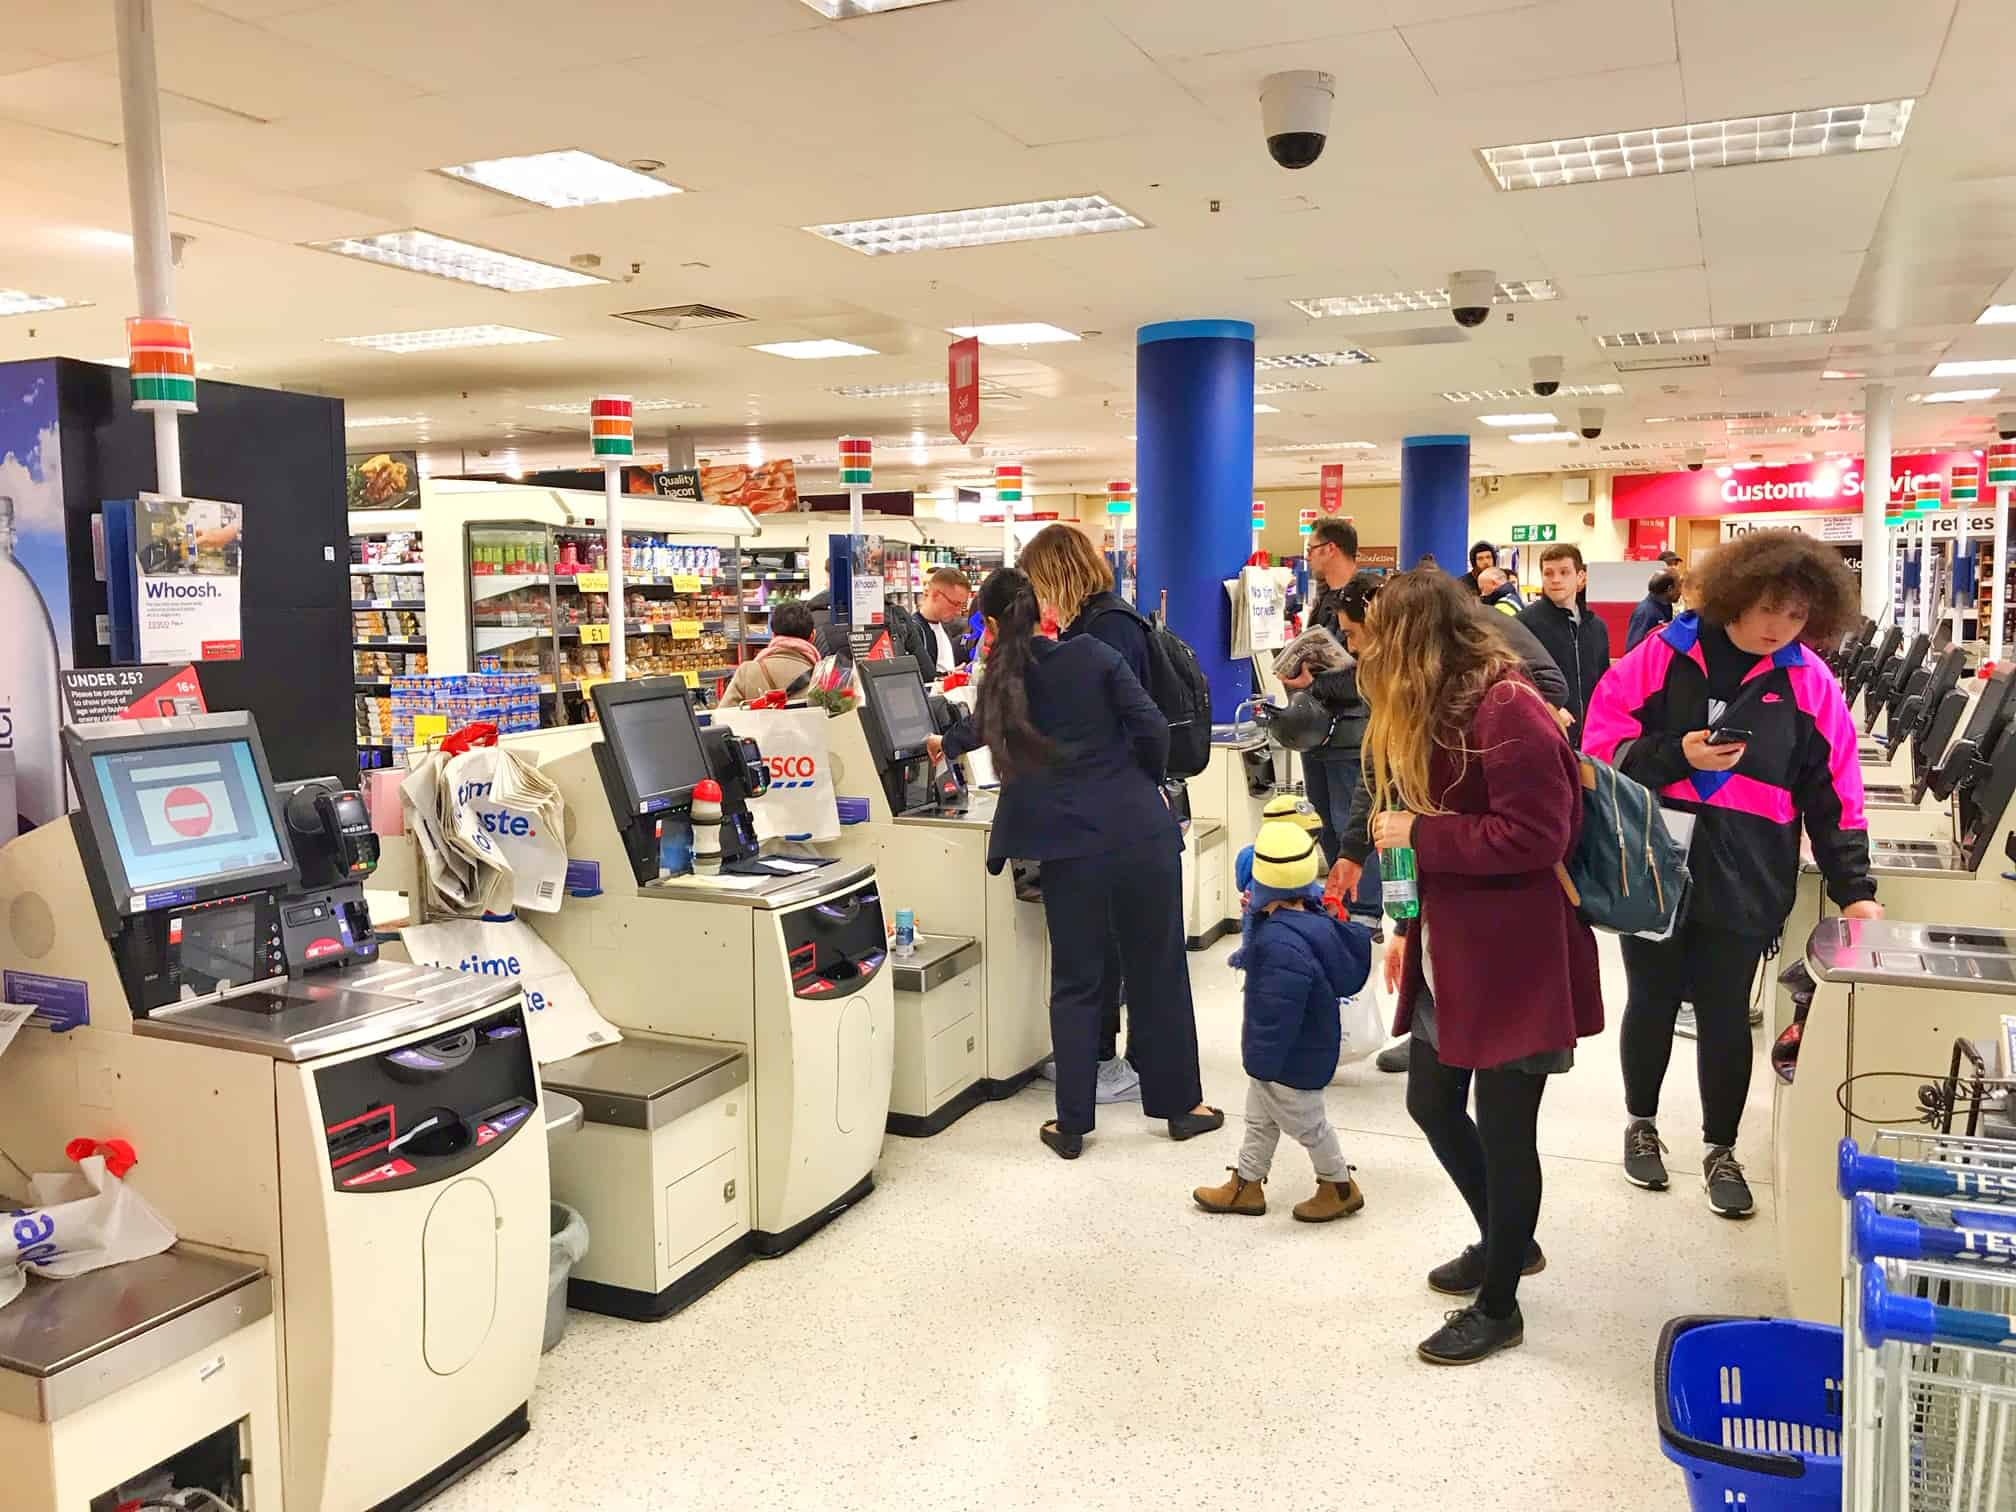 self checkout is popular at supermarkets and grocery stores in london